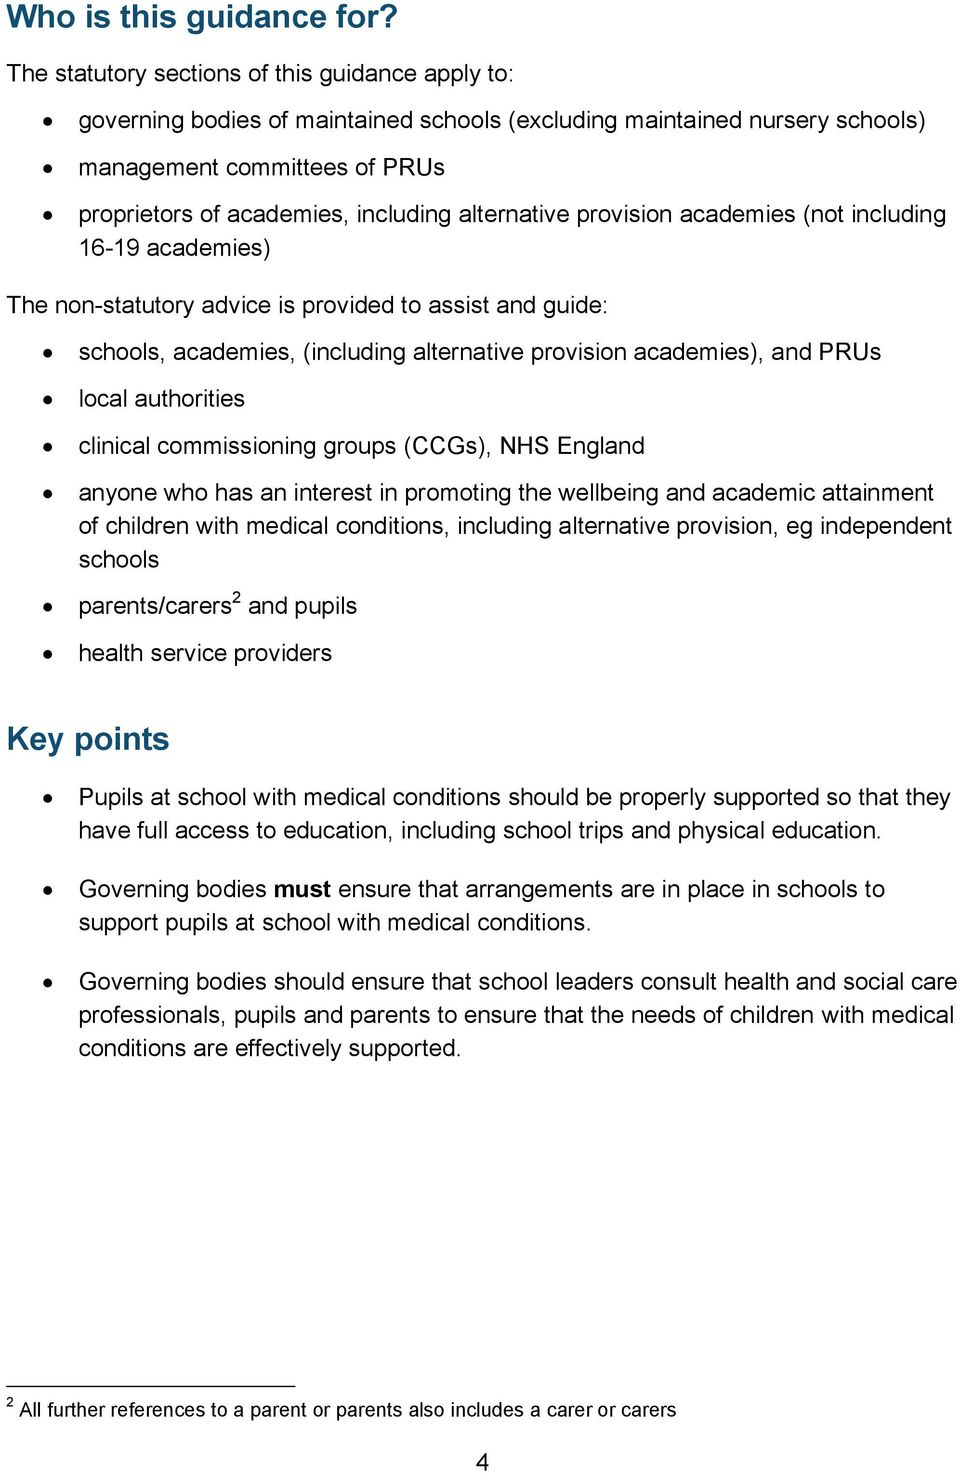 alternative provision academies (not including 16-19 academies) The non-statutory advice is provided to assist and guide: schools, academies, (including alternative provision academies), and PRUs